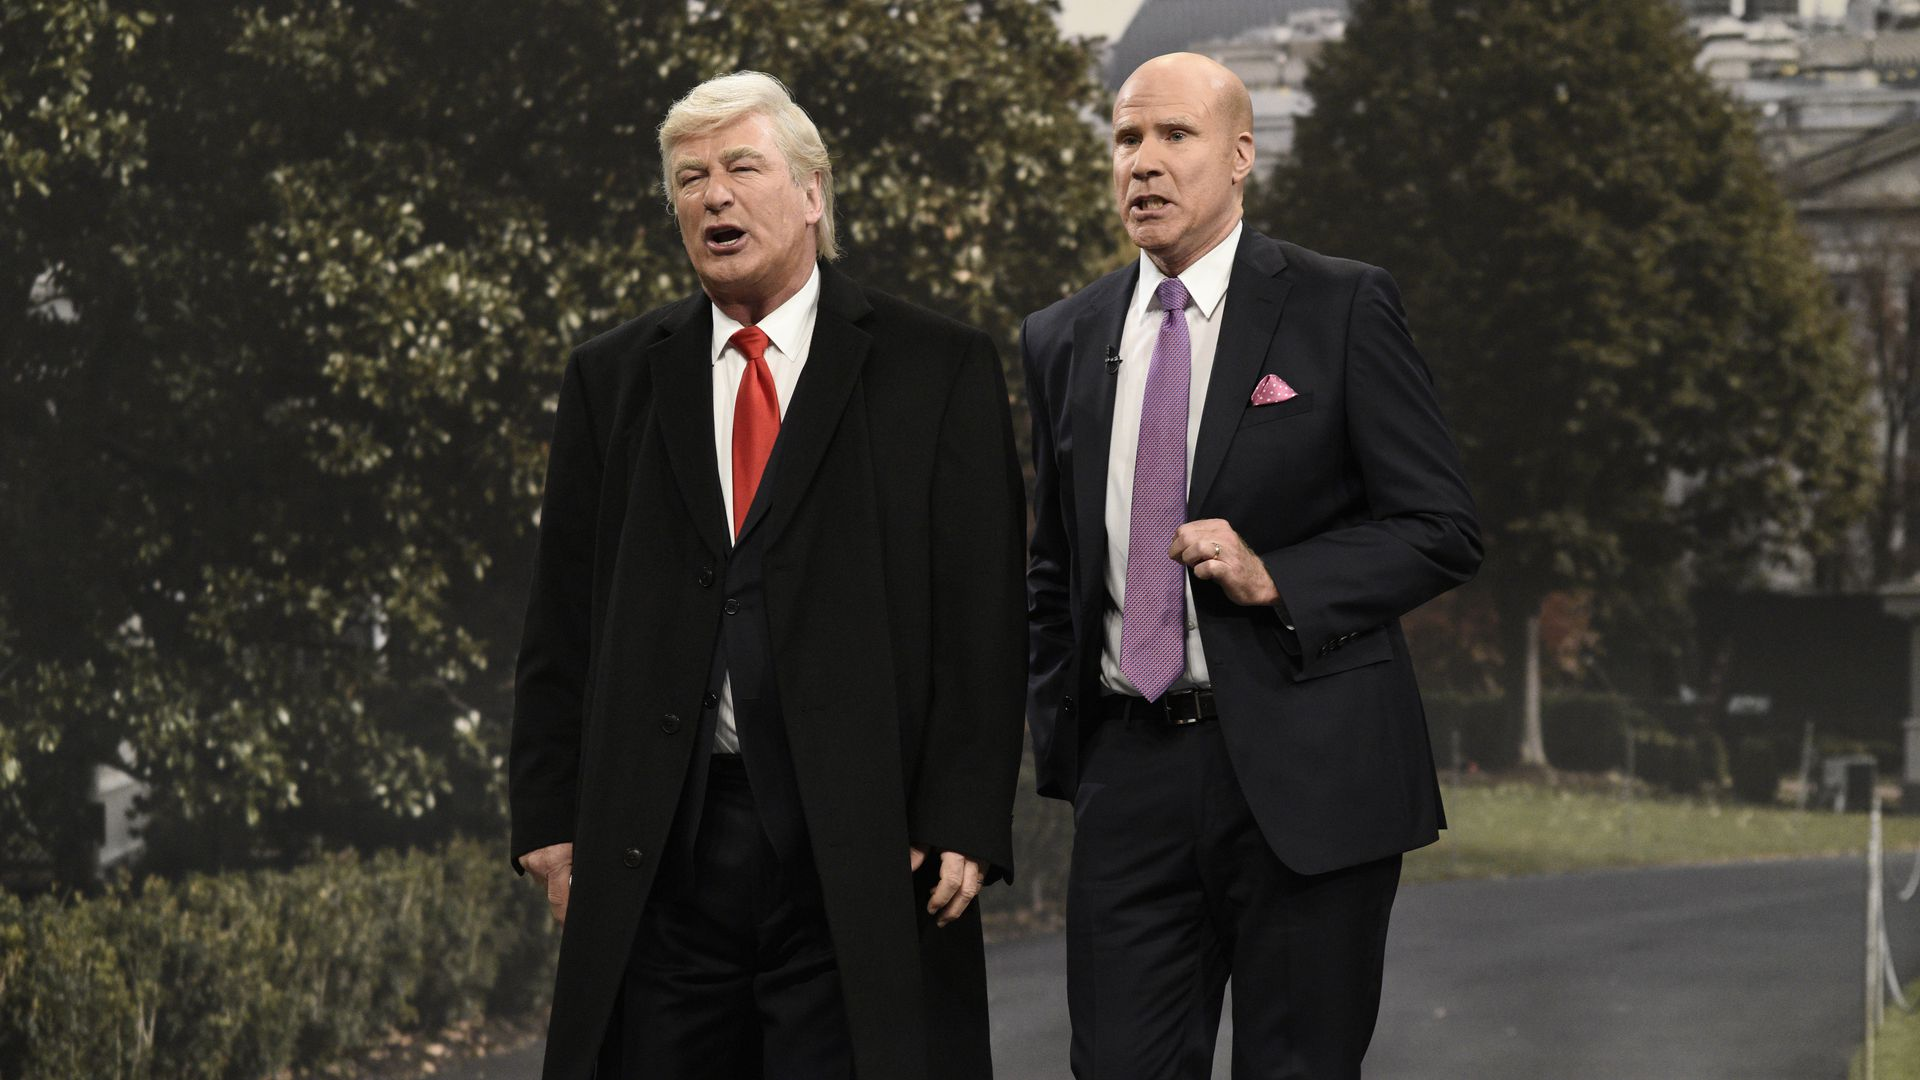 Alec Baldwin and Will Ferrell on SNL